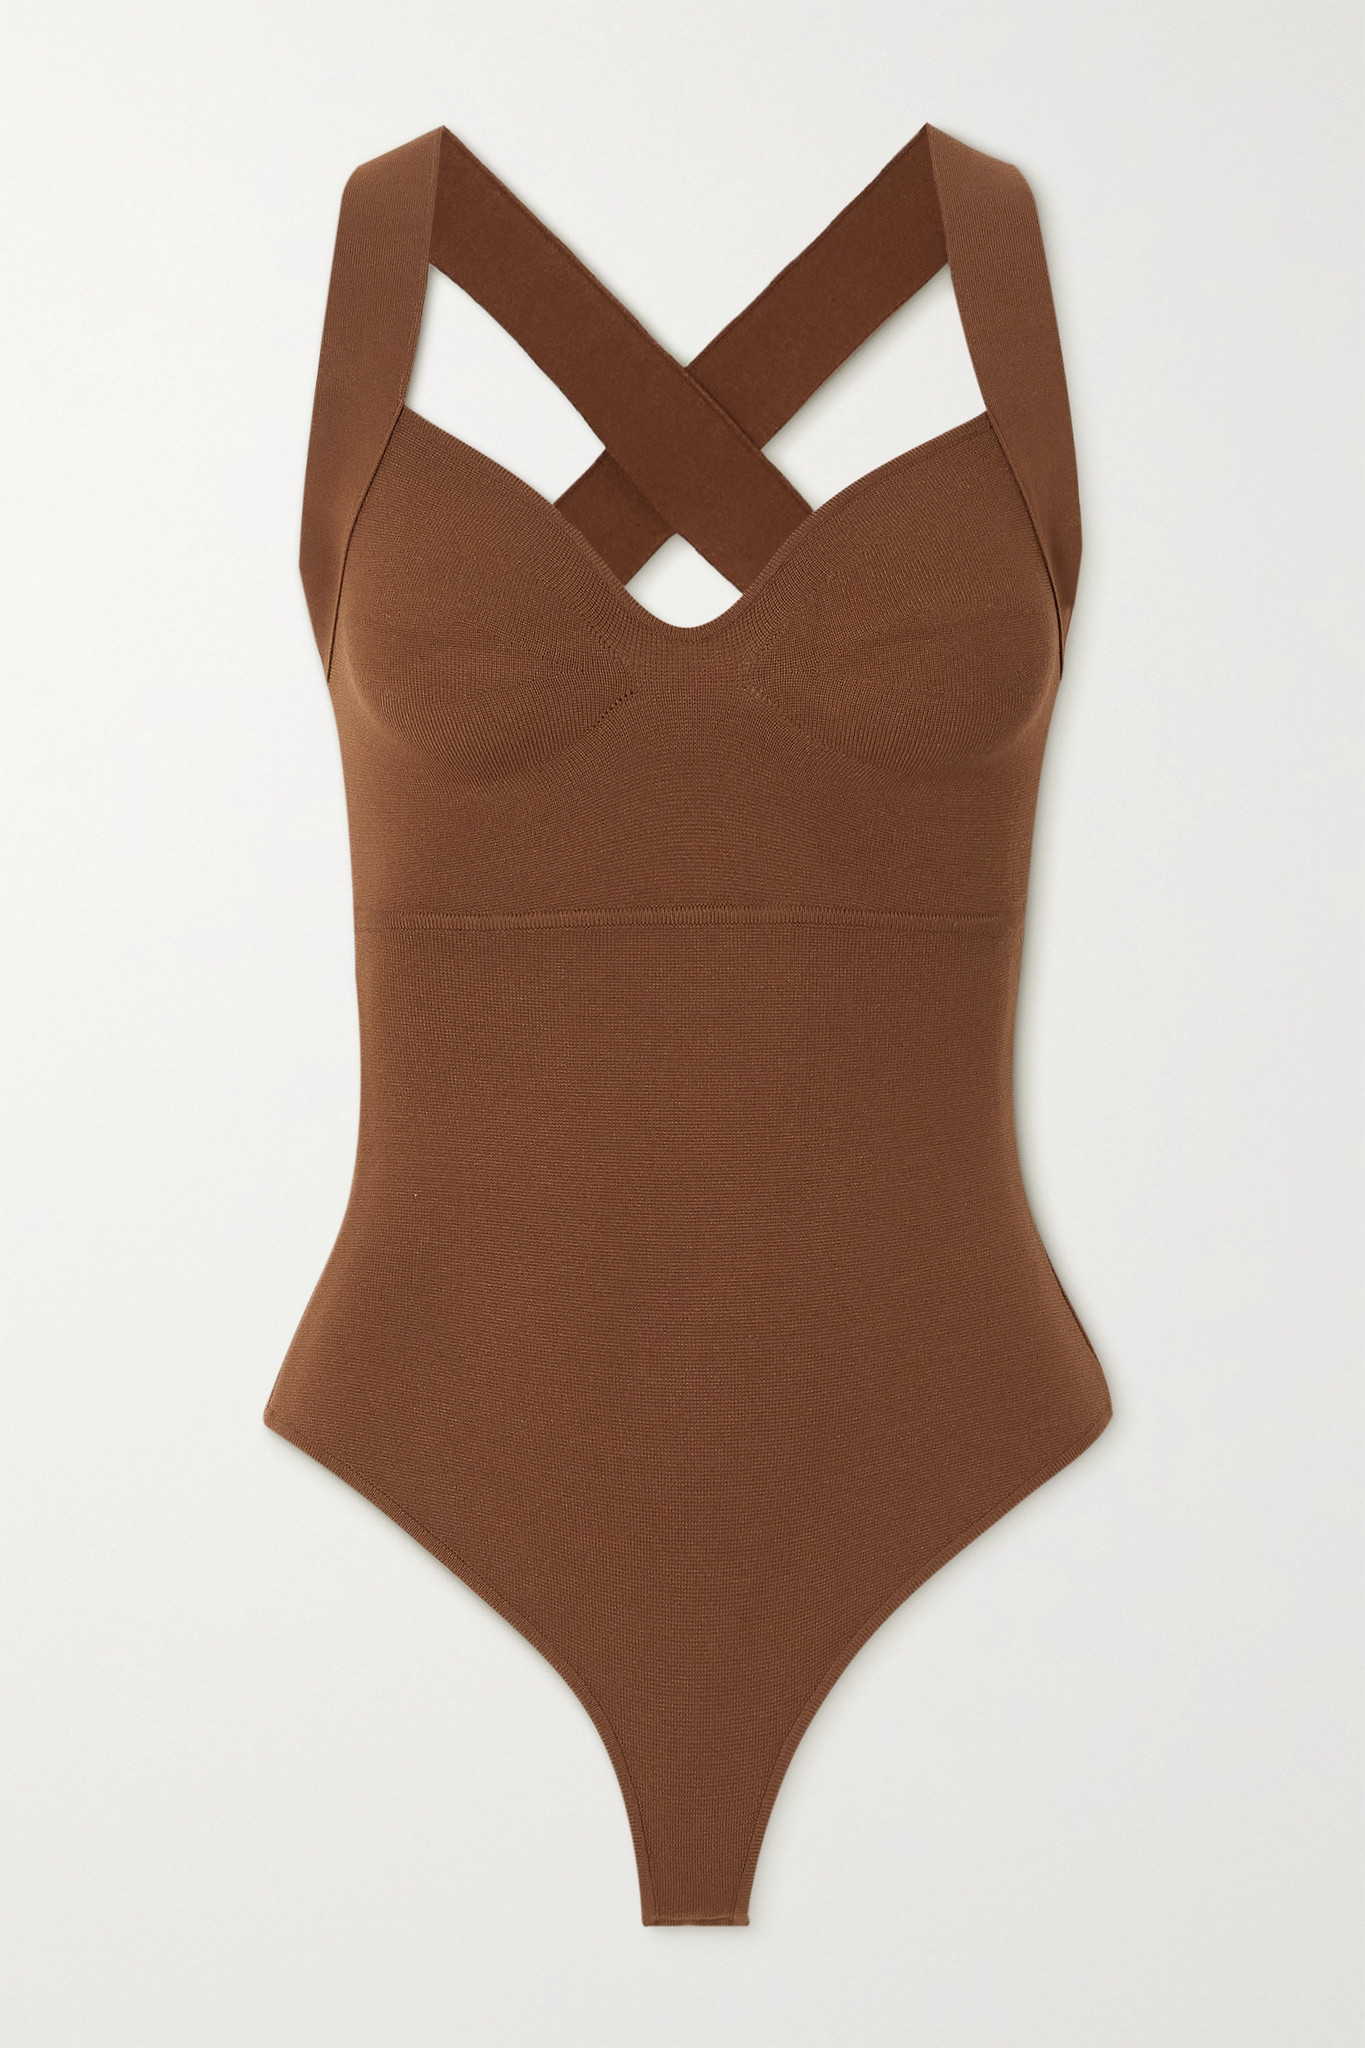 ZEYNEP ARCAY - Stretch-knit Bodysuit - Brown - US2